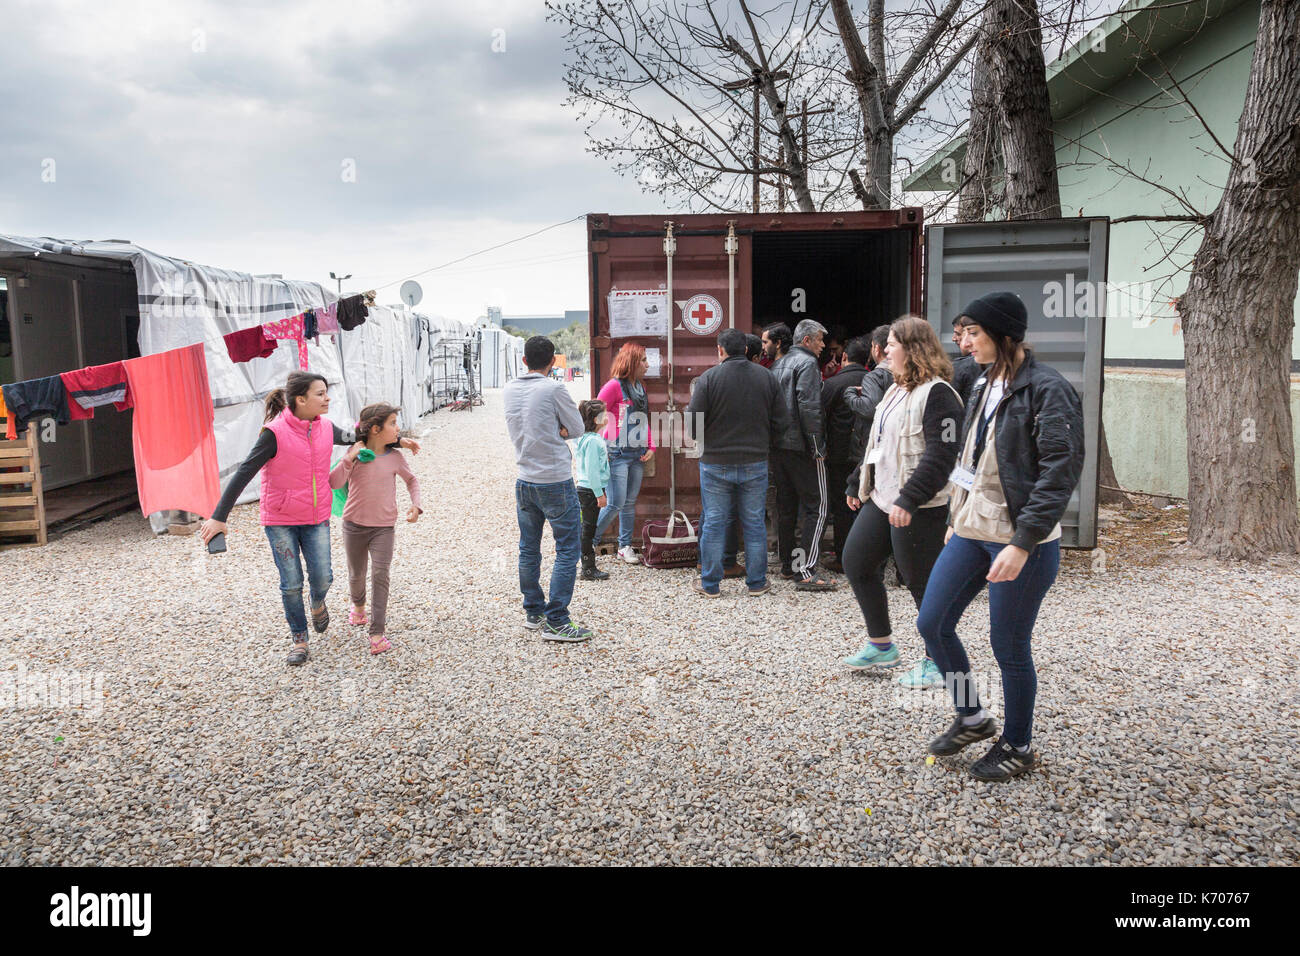 At the Ritsona Refugee Camp in Greece, men gather by a shipping container, used as office and distribution centre by the Hellenic Red Cross. - Stock Image